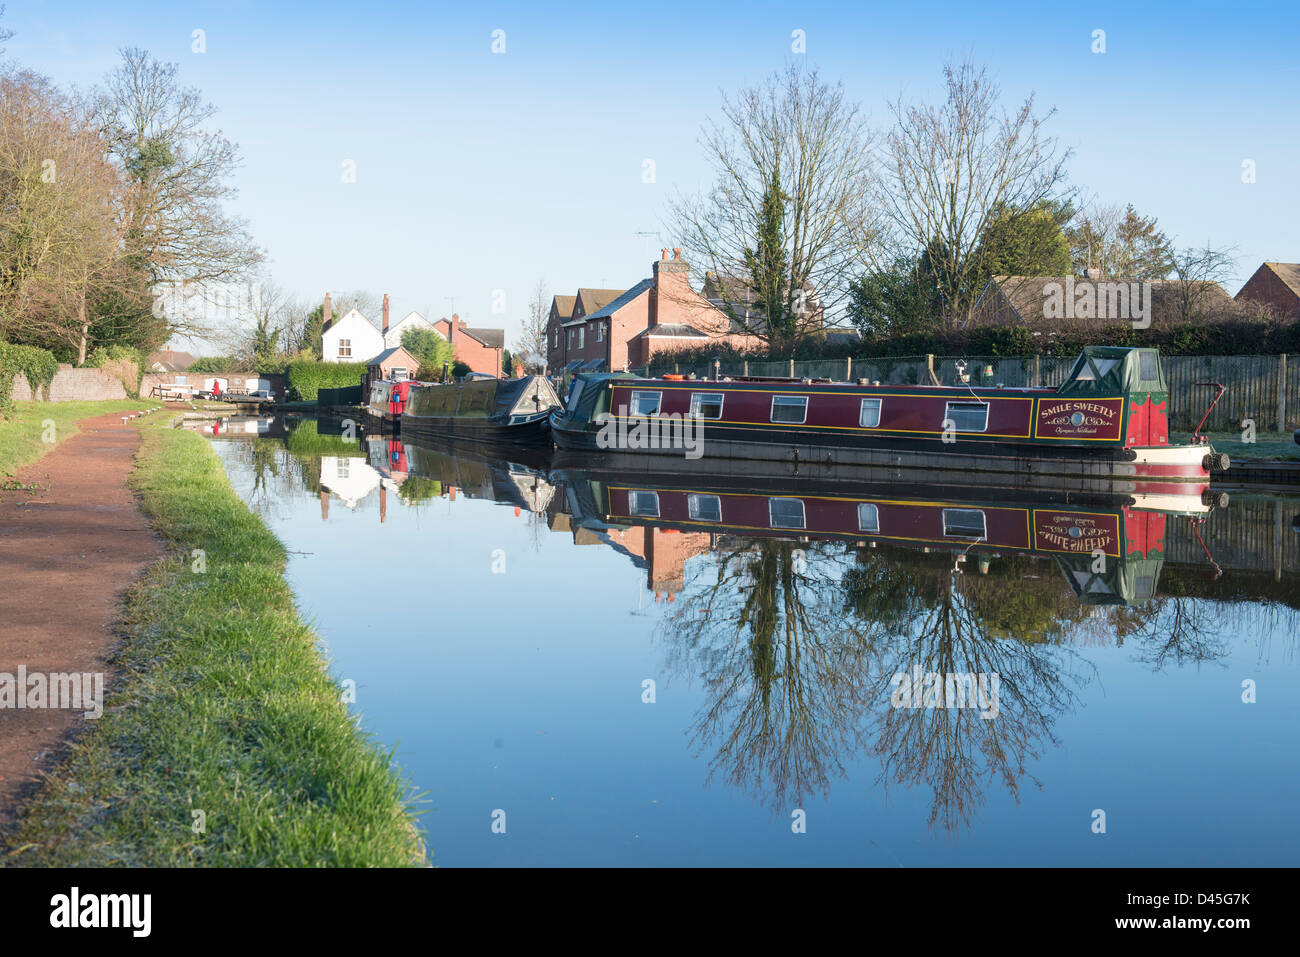 Canals at Penkridge, Staffordshire. - Stock Image